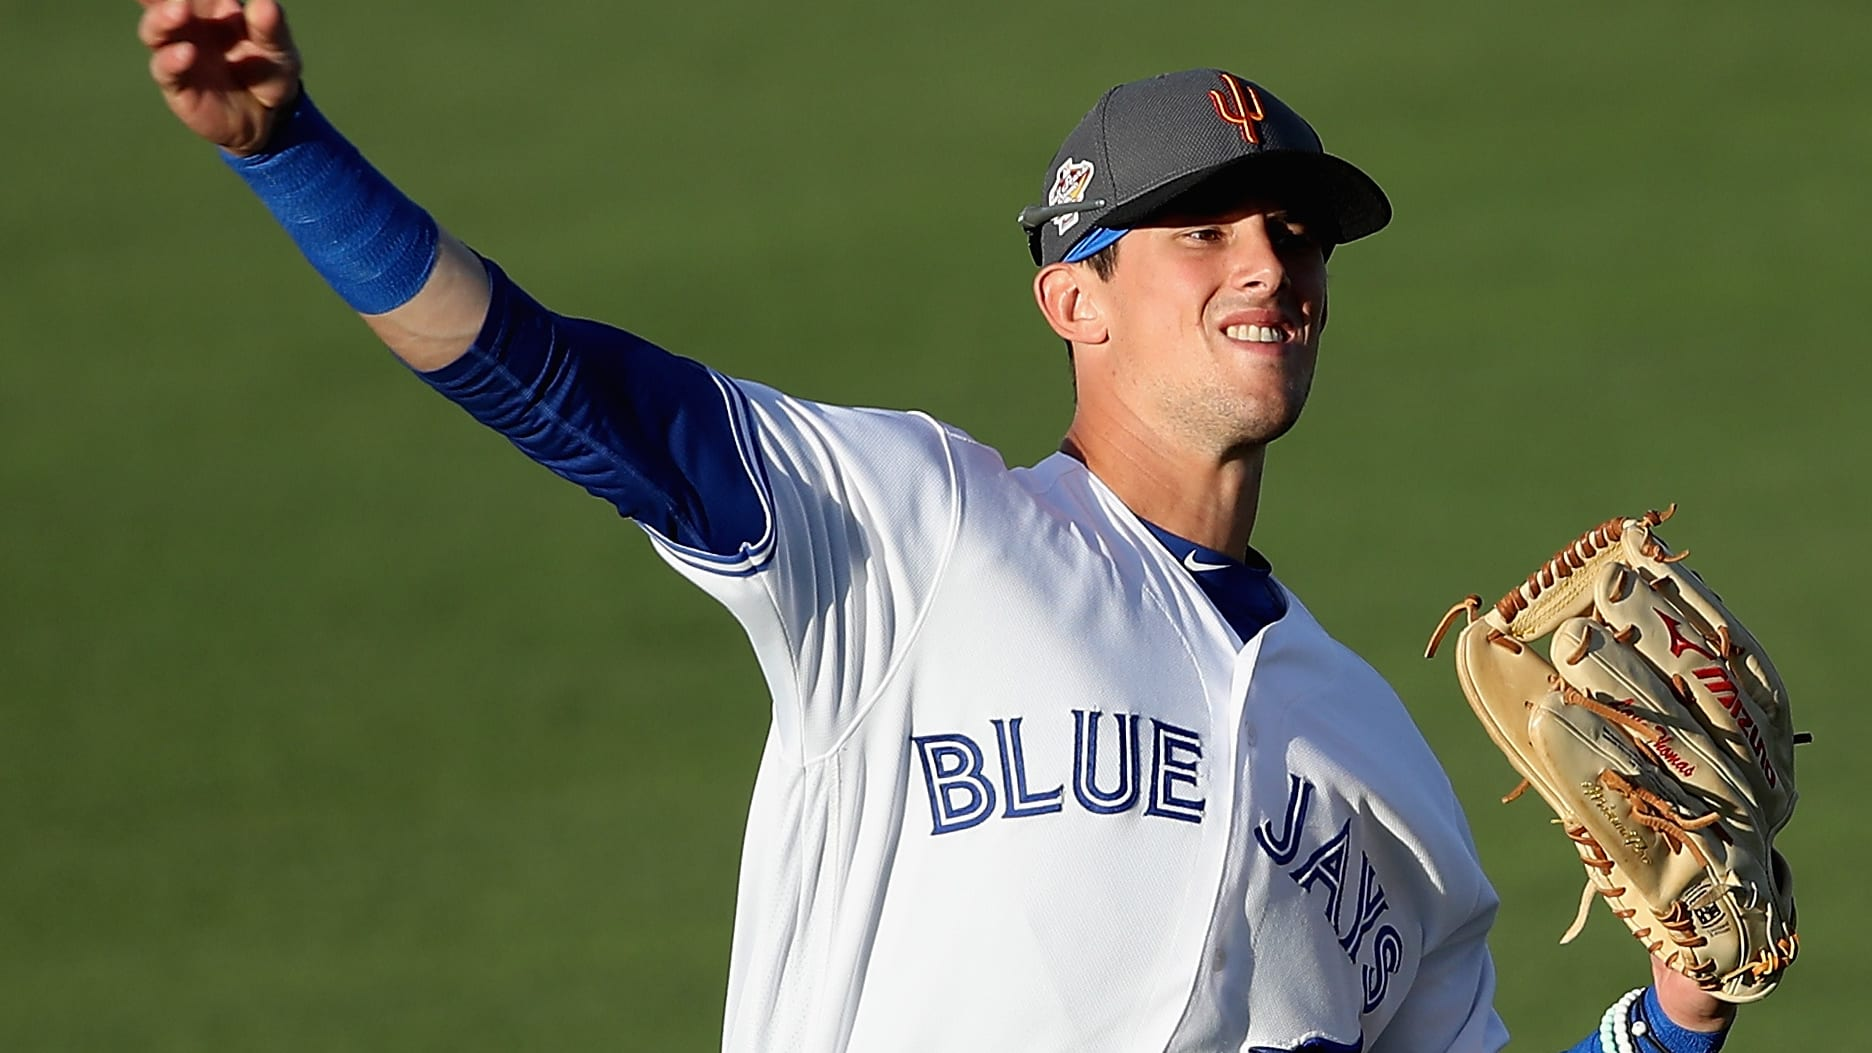 SURPRISE, AZ - NOVEMBER 03:  AFL West All-Star, Cavan Biggio #26 of the Toronto Blue Jays warms up before the Arizona Fall League All Star Game at Surprise Stadium on November 3, 2018 in Surprise, Arizona.  (Photo by Christian Petersen/Getty Images)